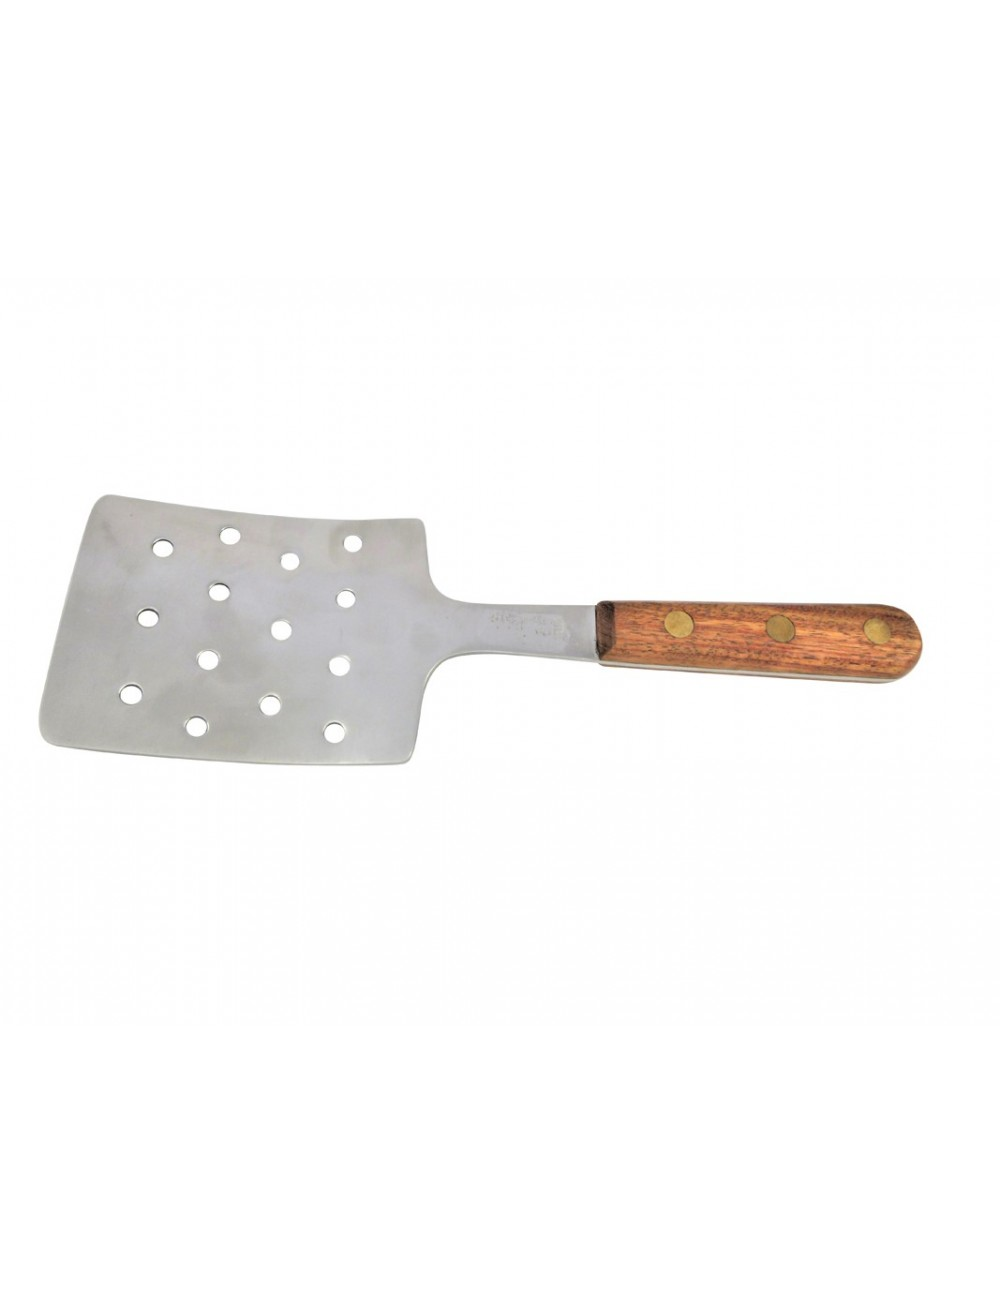 STAINLESS STEEL SLOTTED SPATULA - ROSEWOOD HANDLE